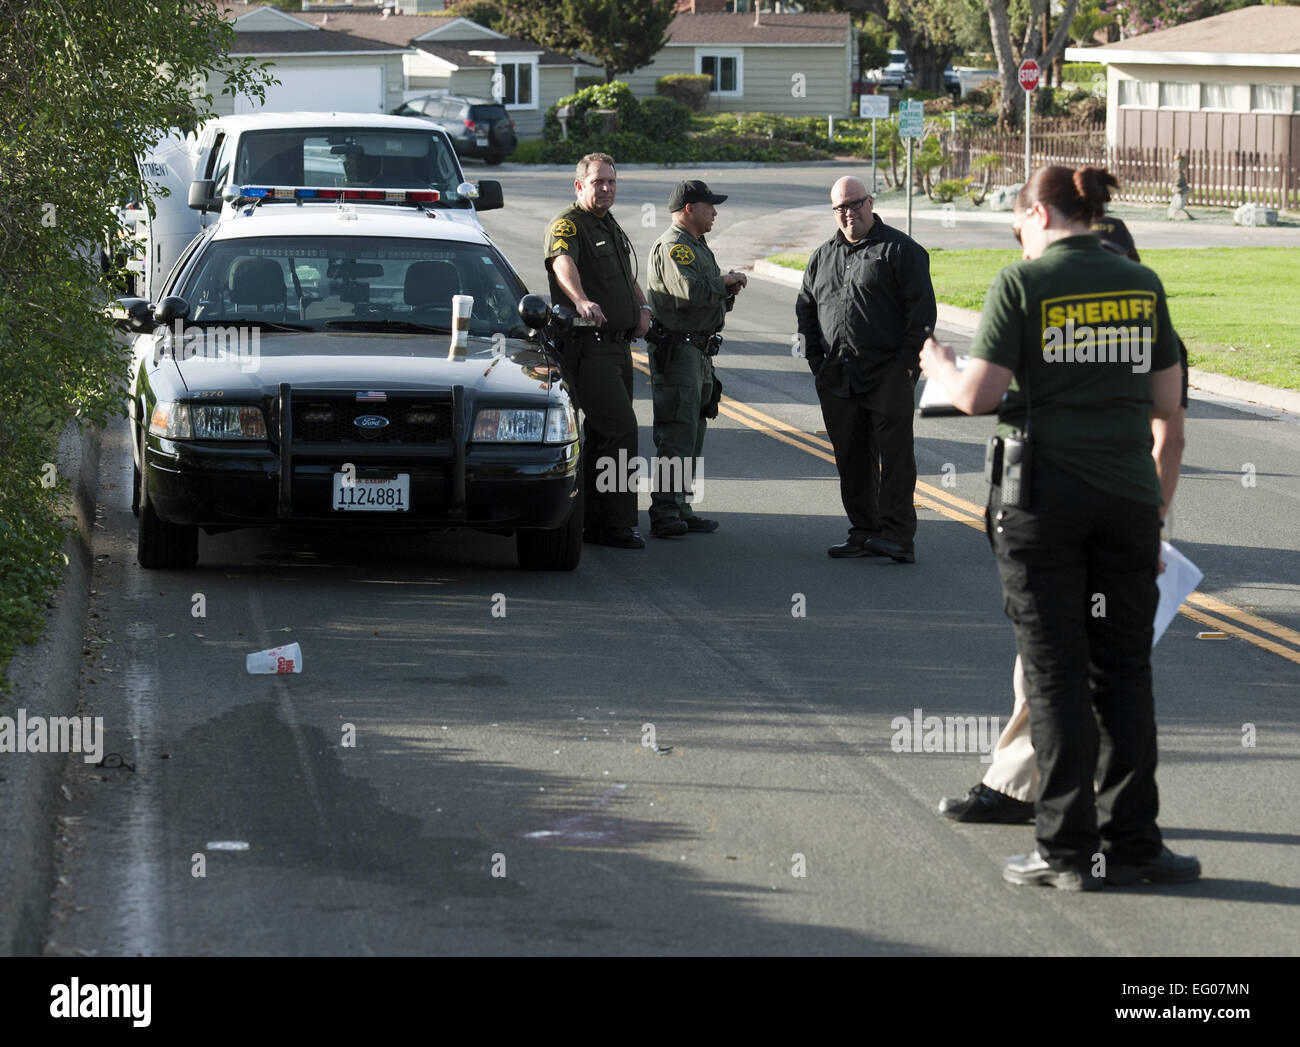 San clemente california usa 2nd feb 2015 orange county orange county sheriffs deputies along with an investigator from the ocsd crime lab responded to a report of suspicious items in the street publicscrutiny Images